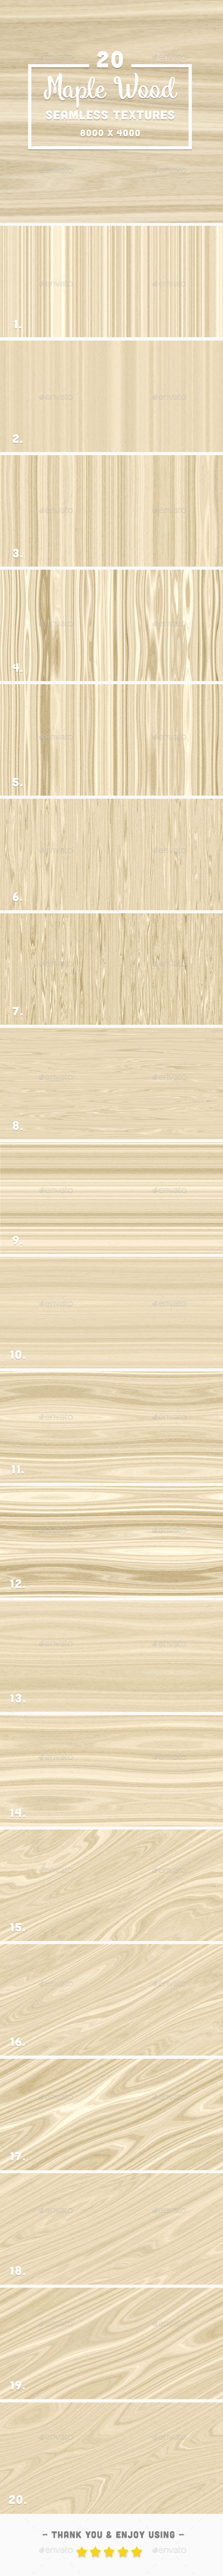 GraphicRiver 20 Maple Wood Seamless Background Textures 20362755